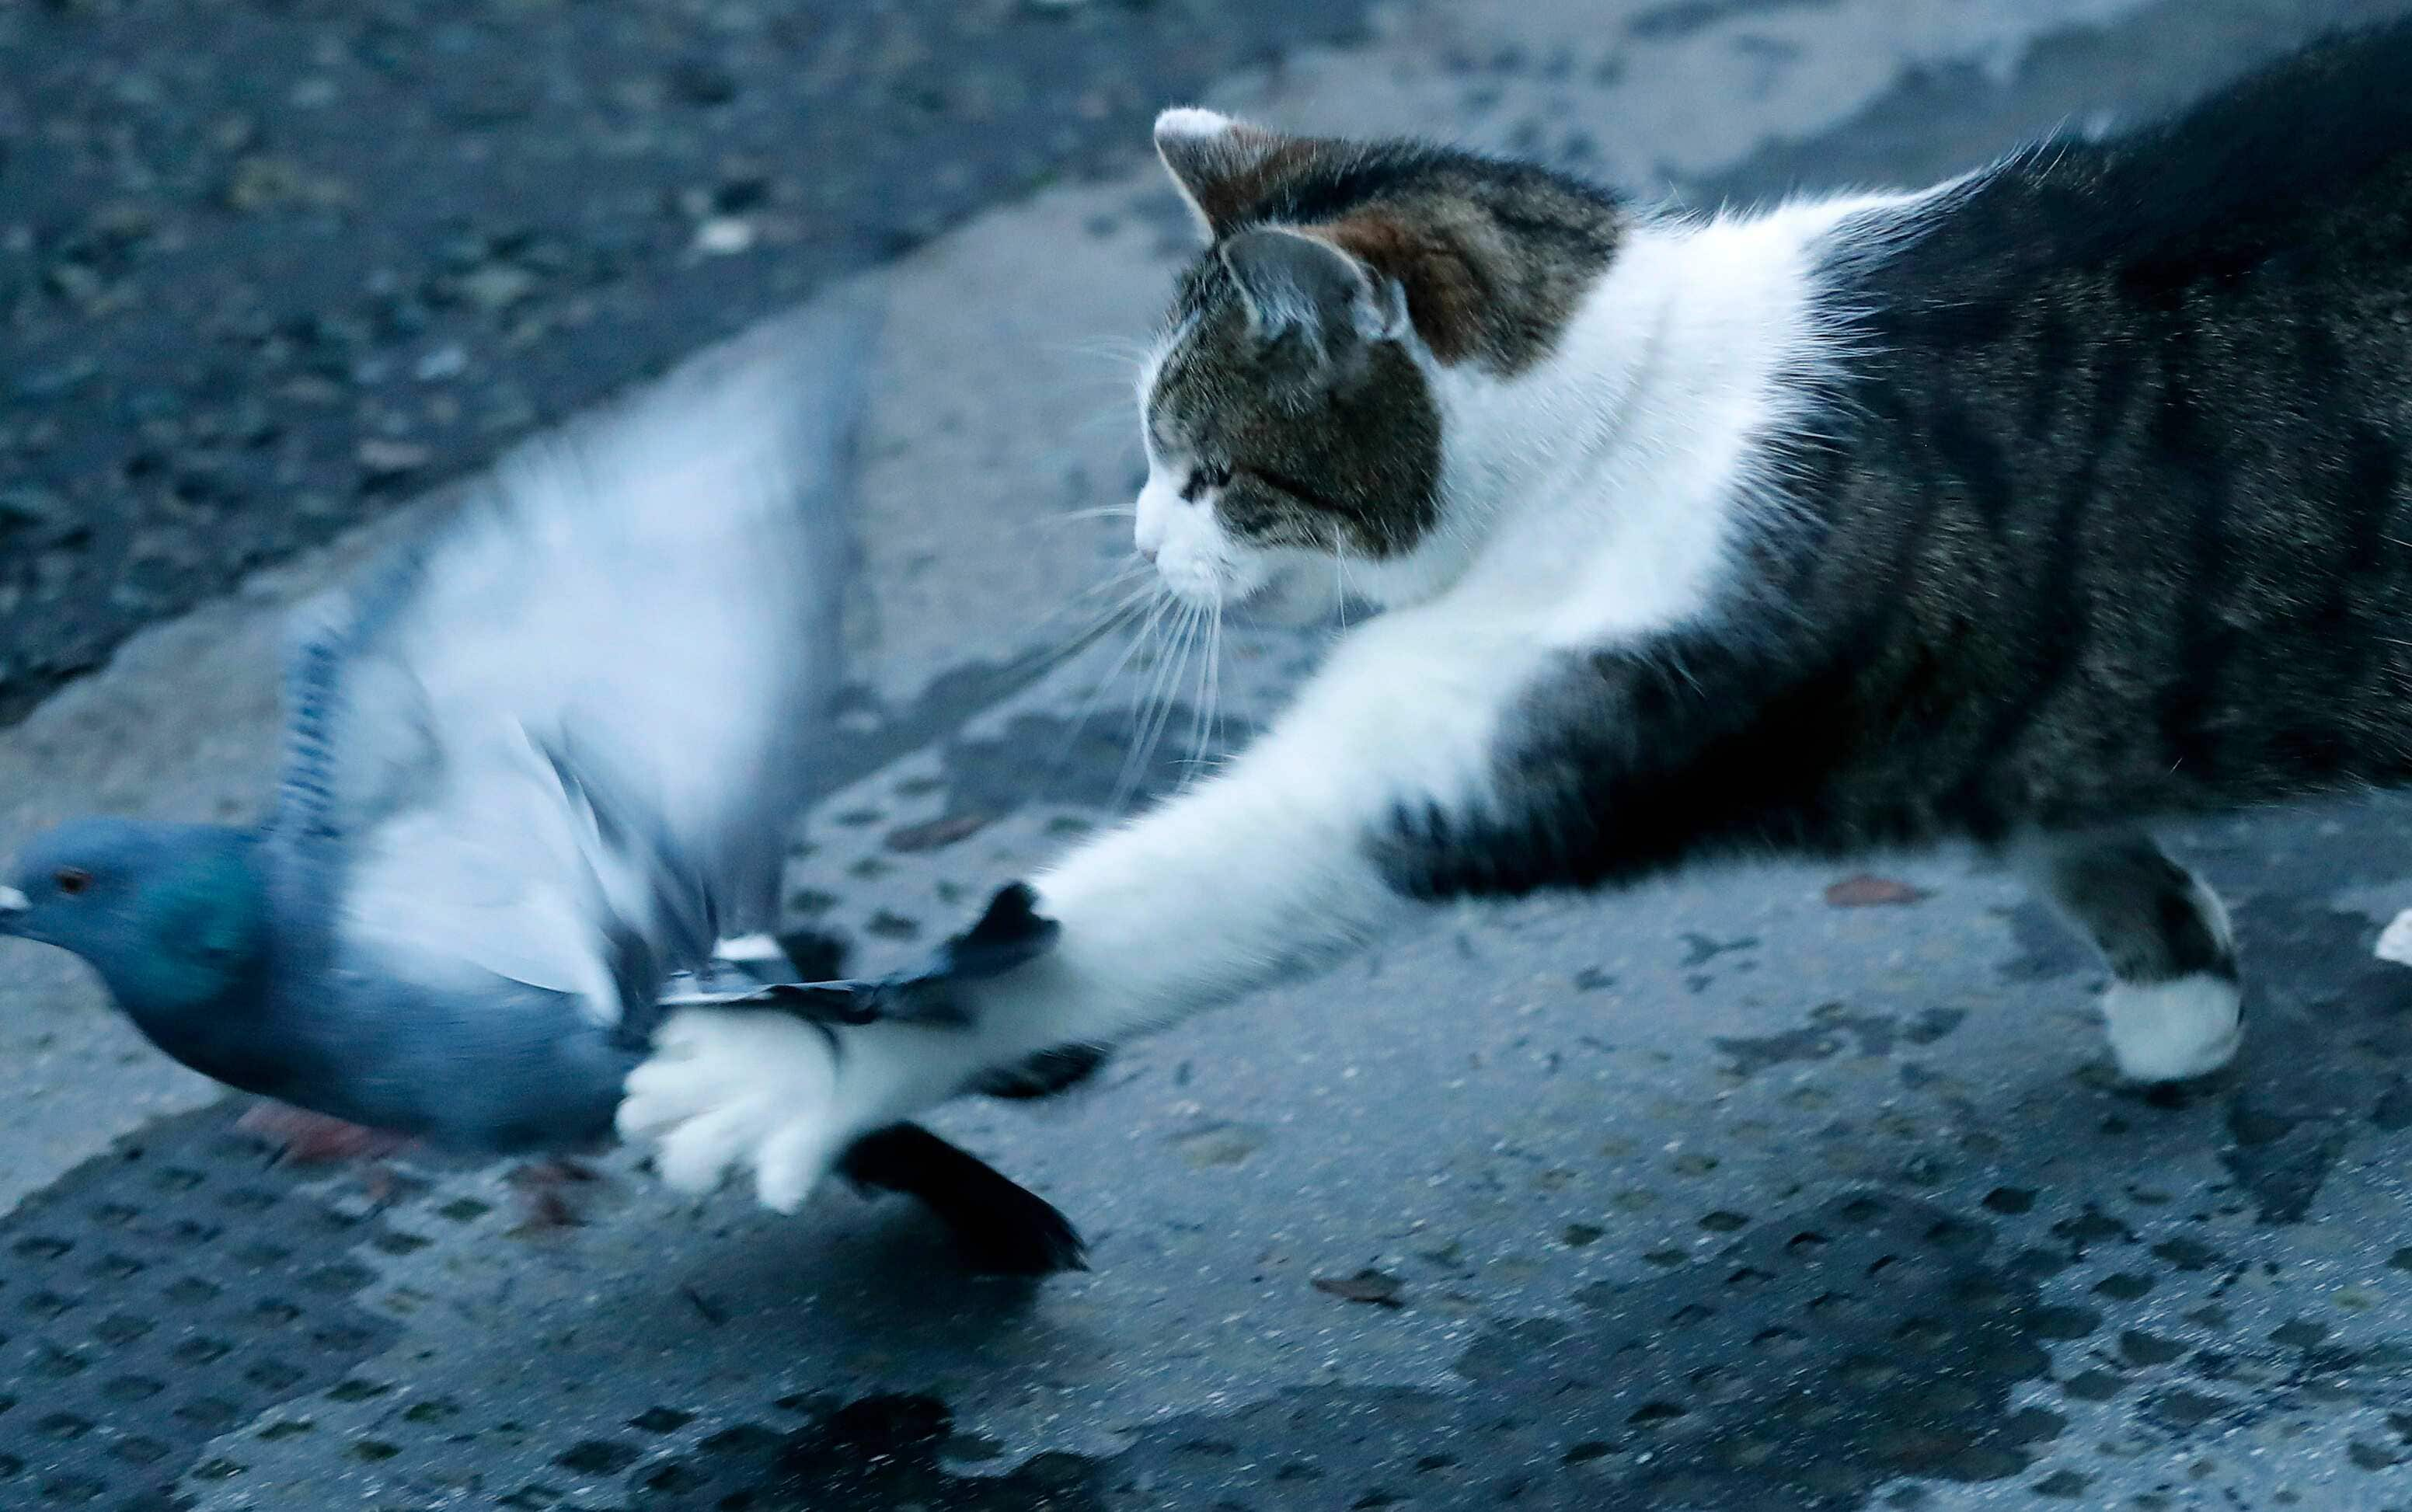 Larry the cat, Chief Mouser to the Cabinet Office catches a pigeon as journalists await results of the Brexit trade deal in Downing Street in London. Monday, Feb. 15, 2021 marks the 10th anniversary of rescue cat Larry becoming Chief Mouser to the Cabinet Office in a bid to deal with a rat problem at 10 Downing Street. (AP)